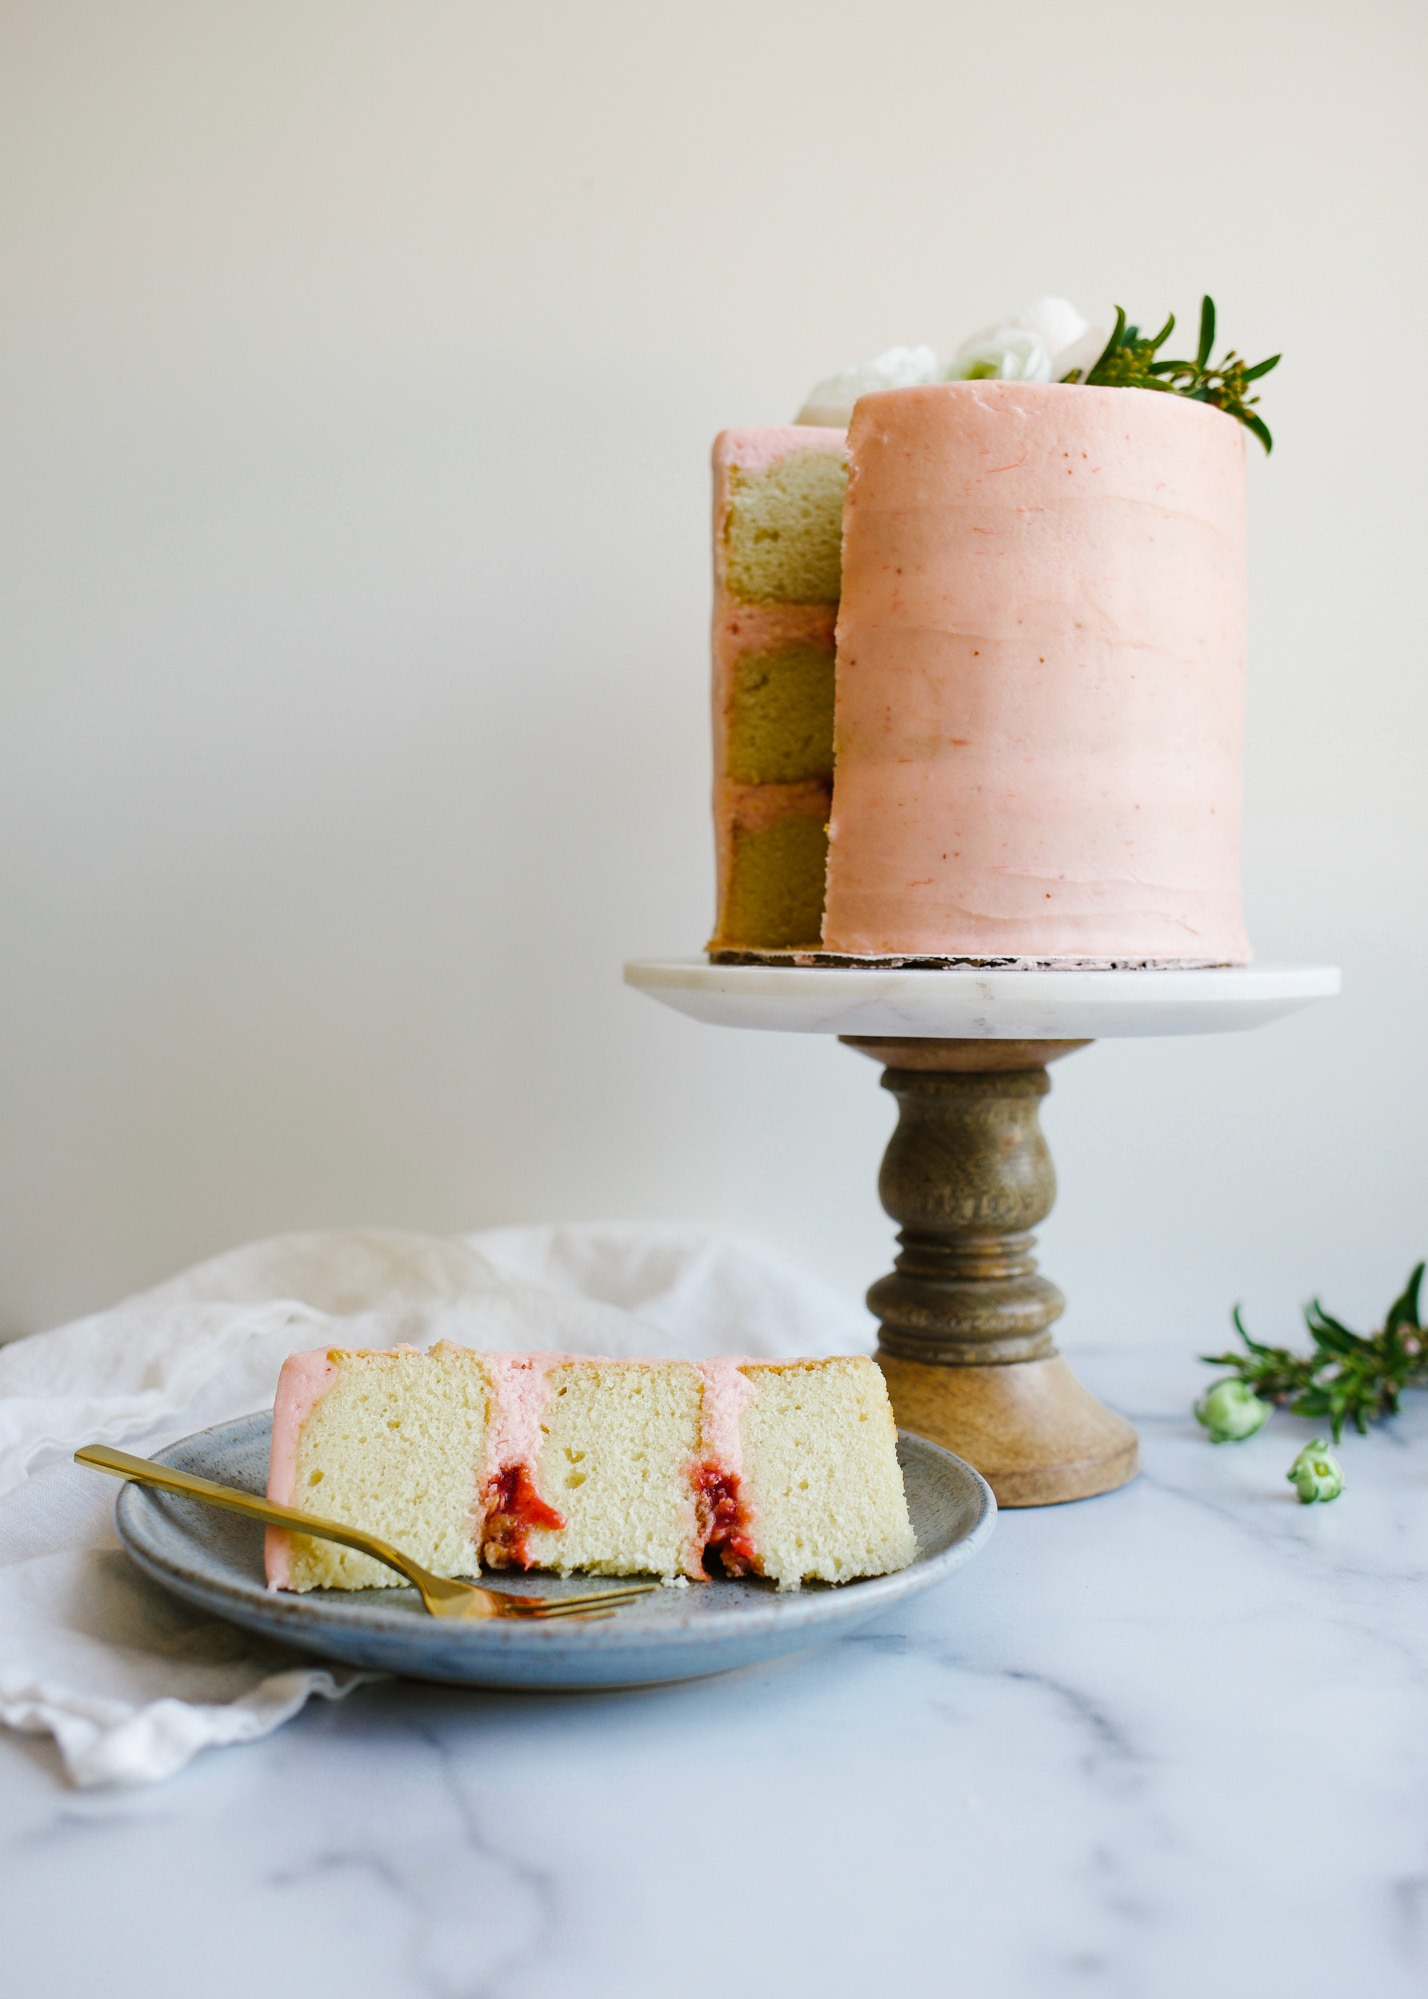 Vanilla Rhubarb Layer Cake by Wood and Spoon. These are vanilla cake layers filled with a rhubarb jam, an oatmeal streusel, and frosted with a rhubarb buttercream. This cake takes on pink color with it's fruit filled icing and stays soft and moist. Perfect for spring and summer parties and celebrations. Find out how to make this naked layer cake on thewoodandspoon.com